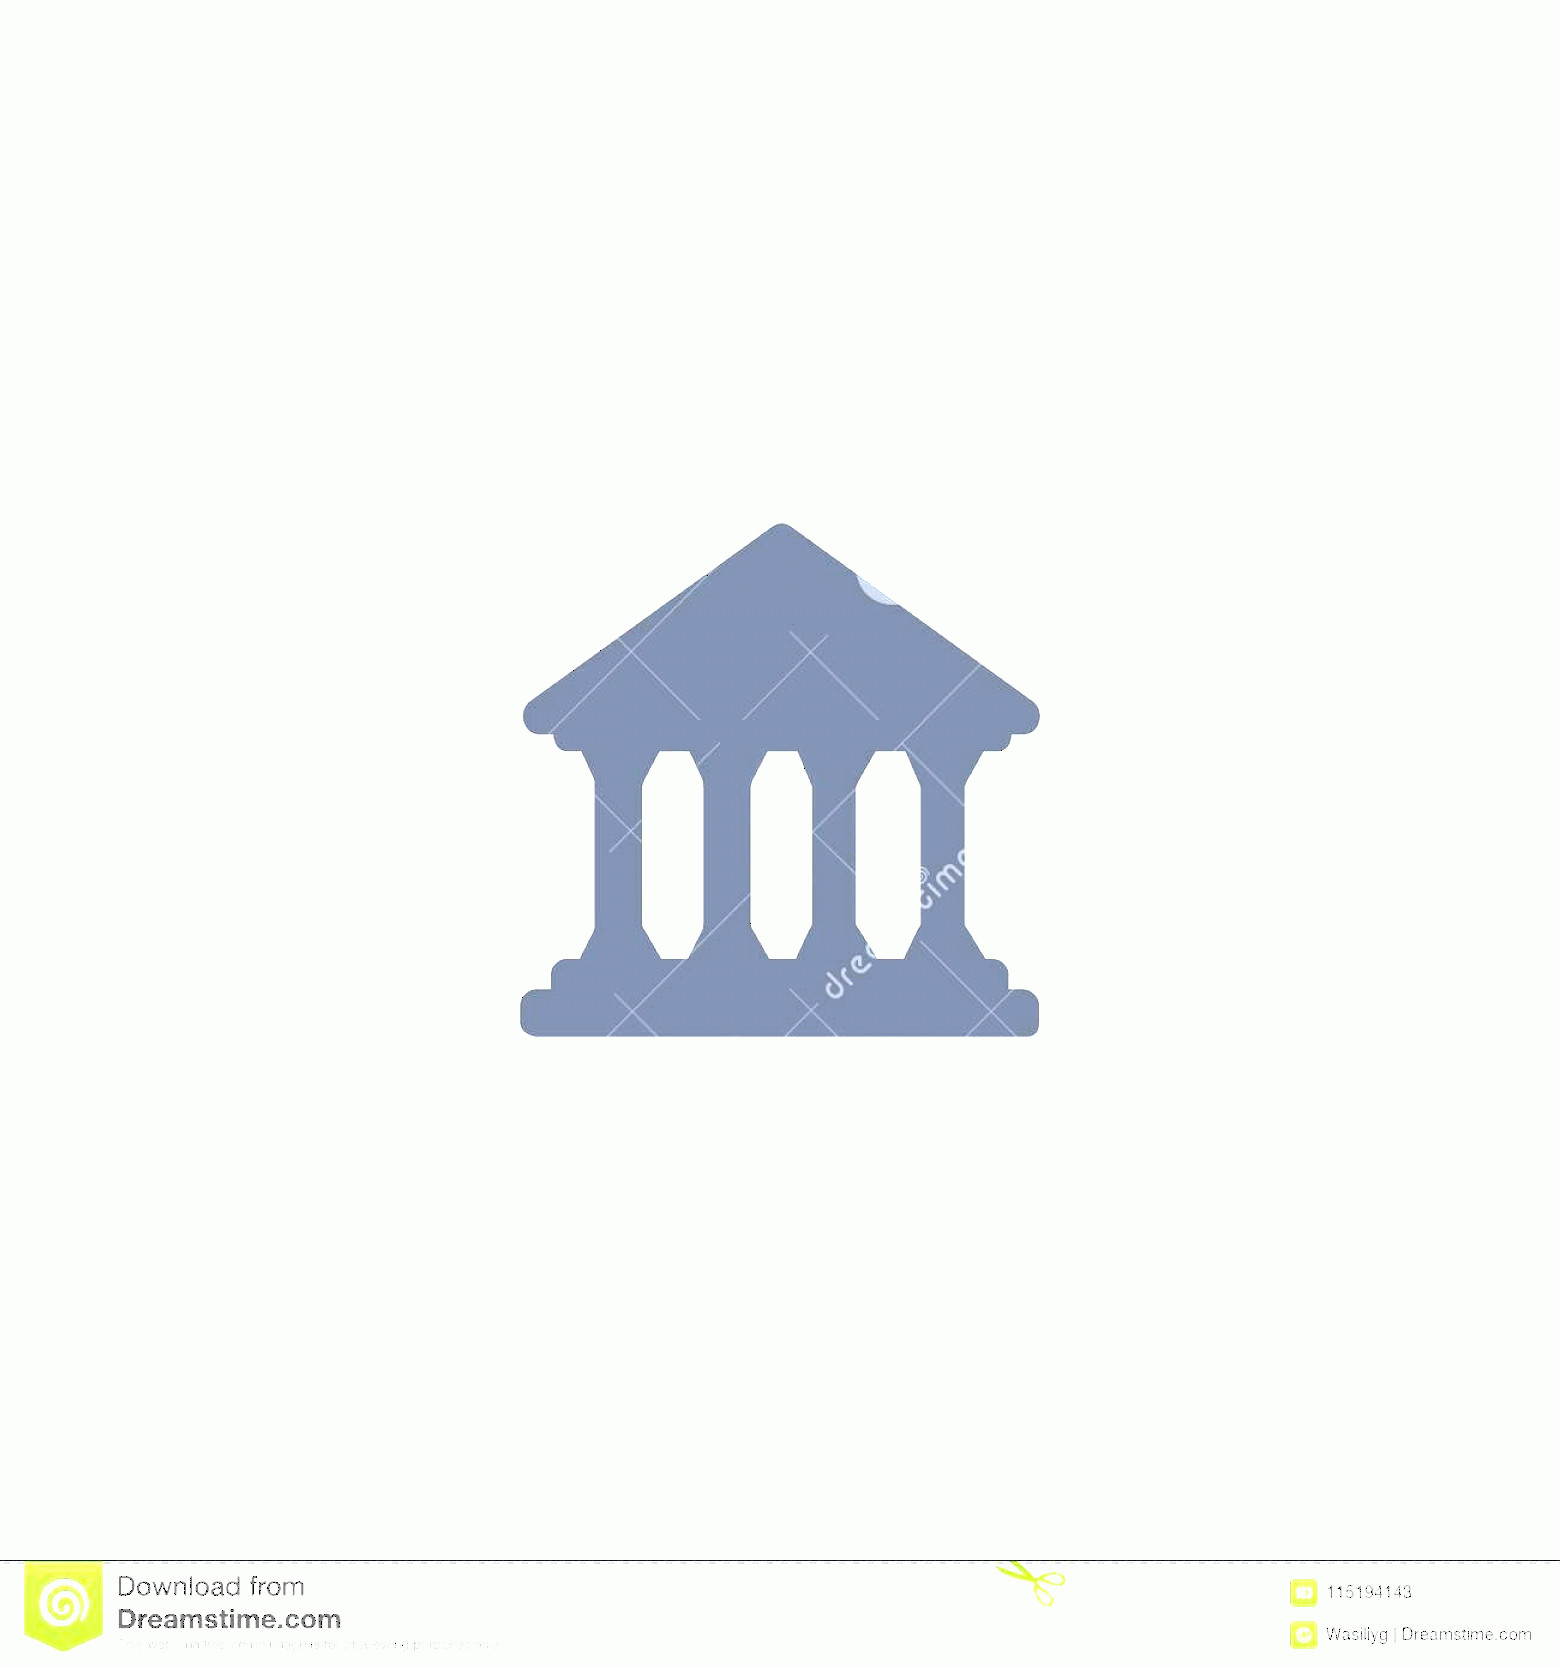 Court Building Vector: Court Building Bank Vector Best Flat Icon Court Building Bank Vector Best Flat Icon White Background Eps Image